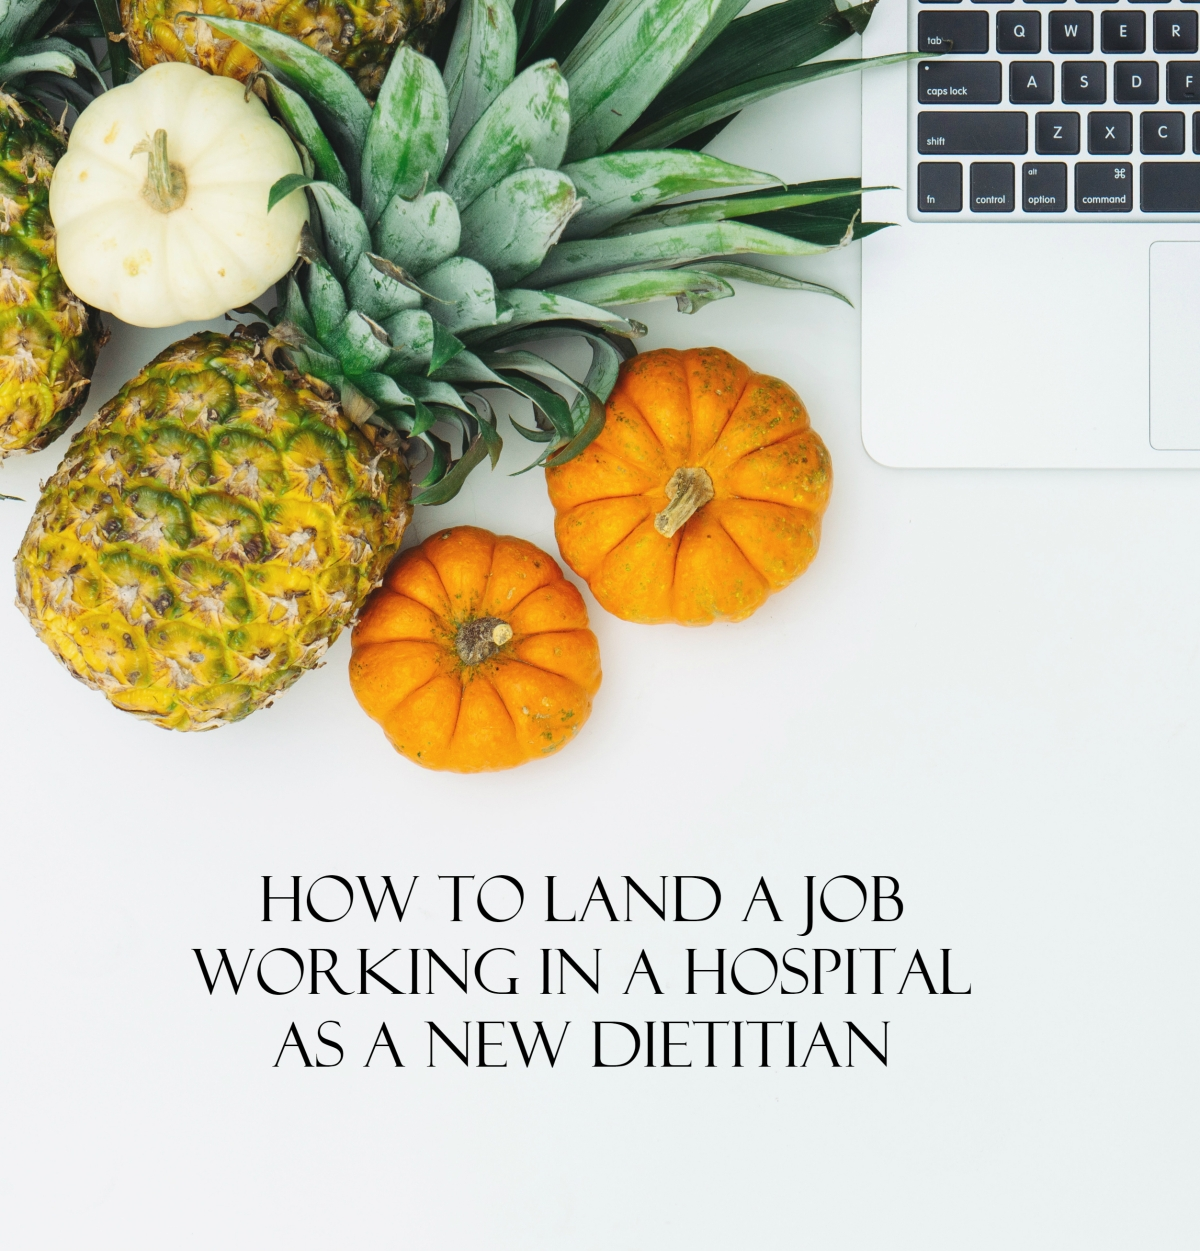 How to Land a Job Working in a Hospital as a New Dietitian